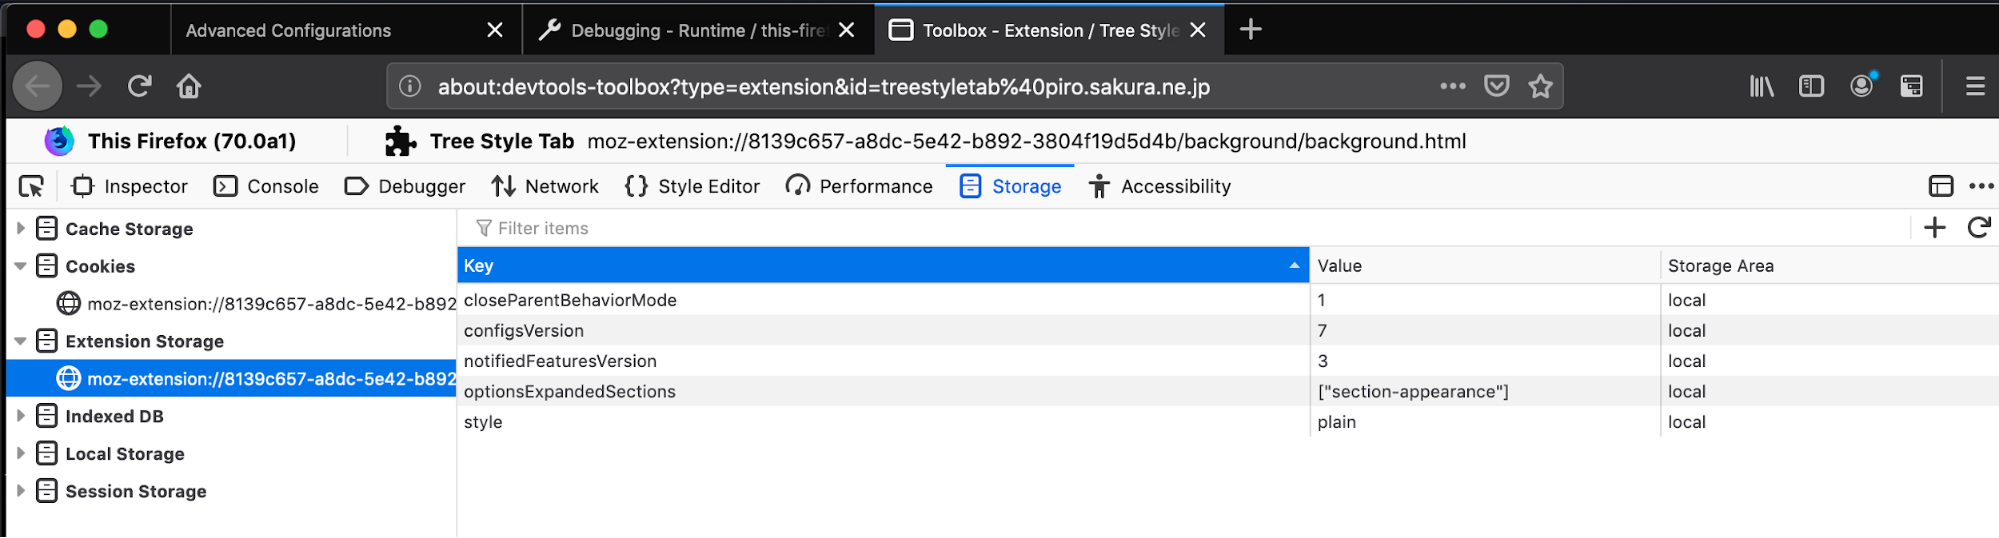 Firefox developer tools showing extension storage data in a multi-column list.